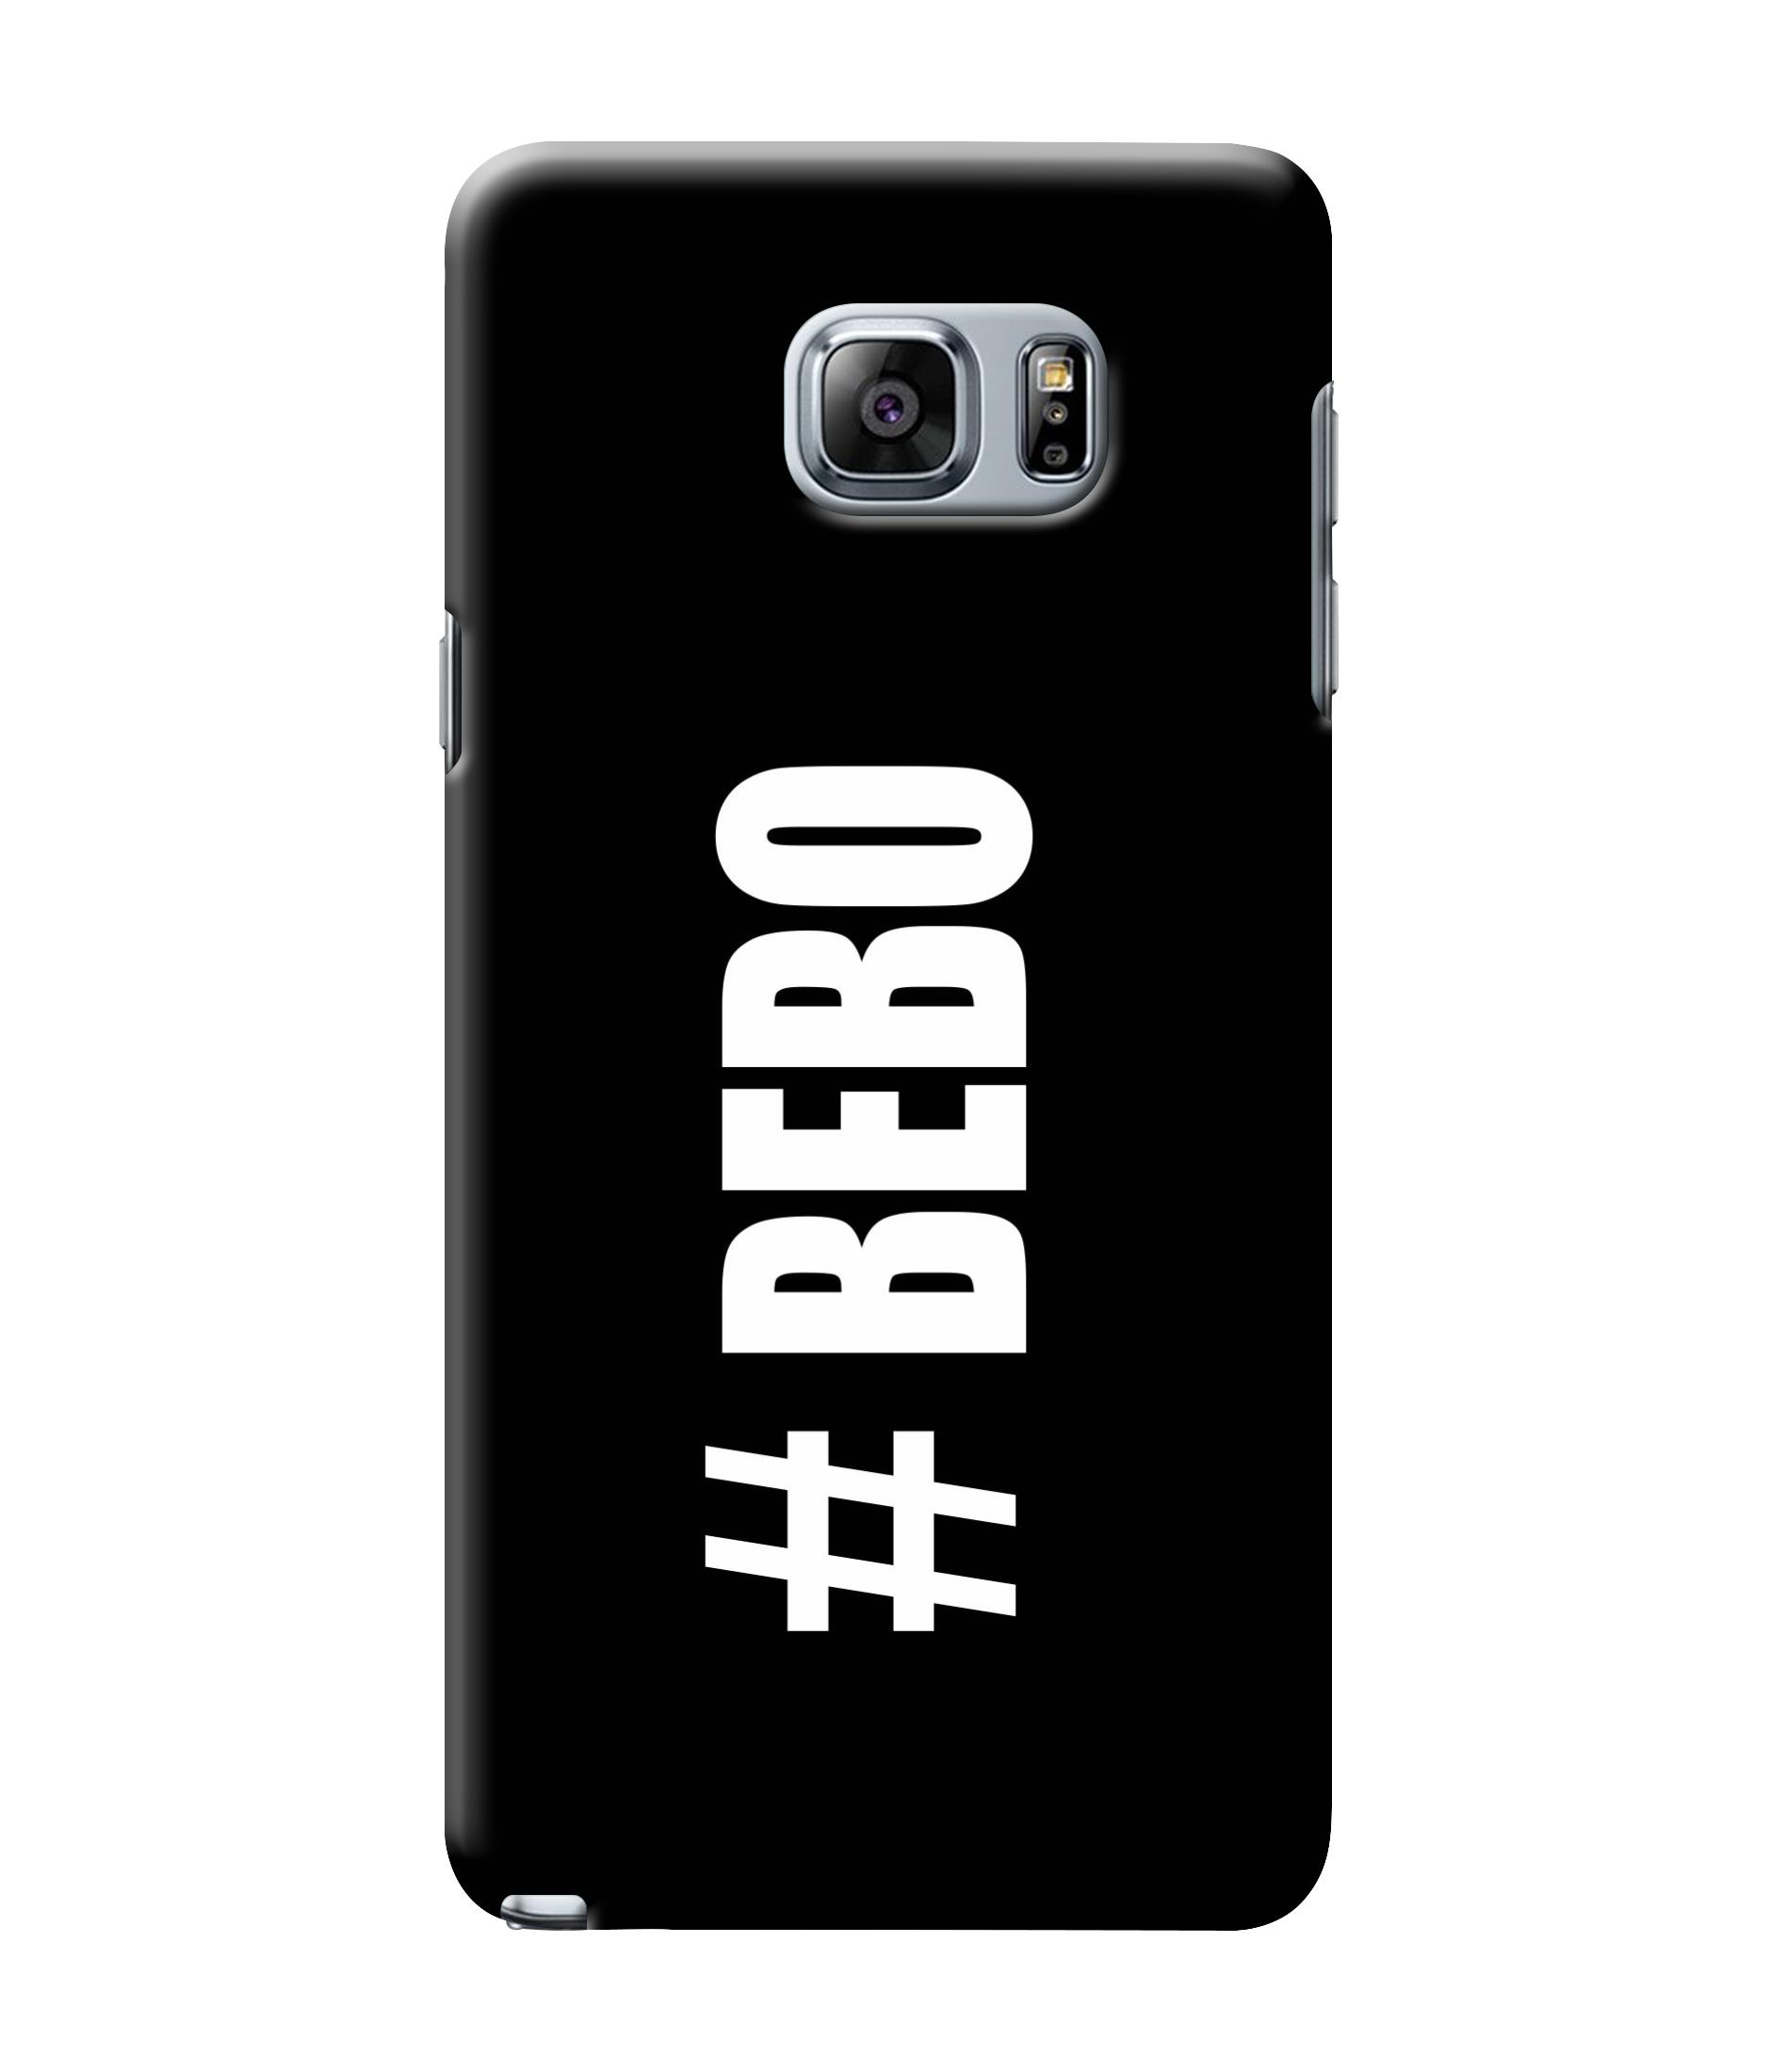 caseophile2 Samsung Galaxy Note 5 Bebo Black Mobile Case